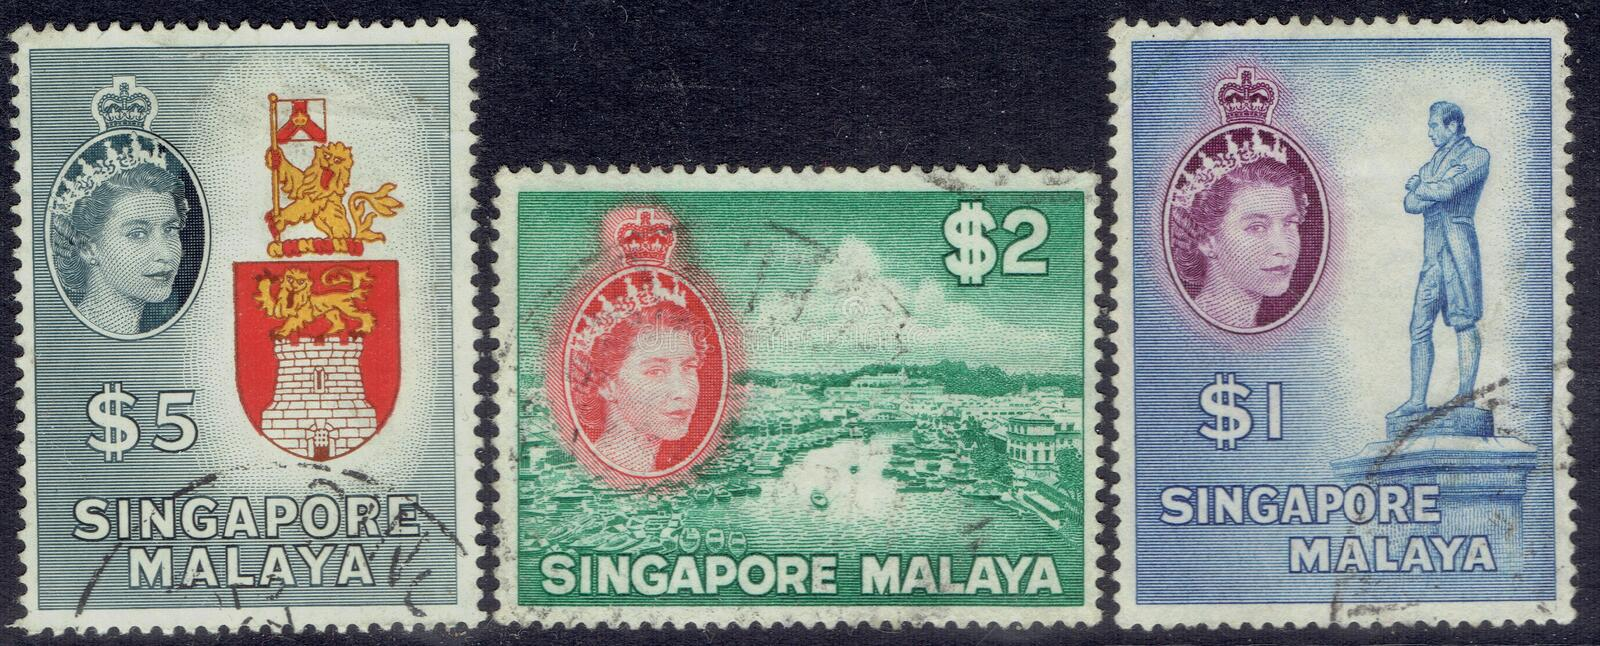 Postage stamps from Singapore: Queen Elizabeth the second $1, $2 and $5 stock photo